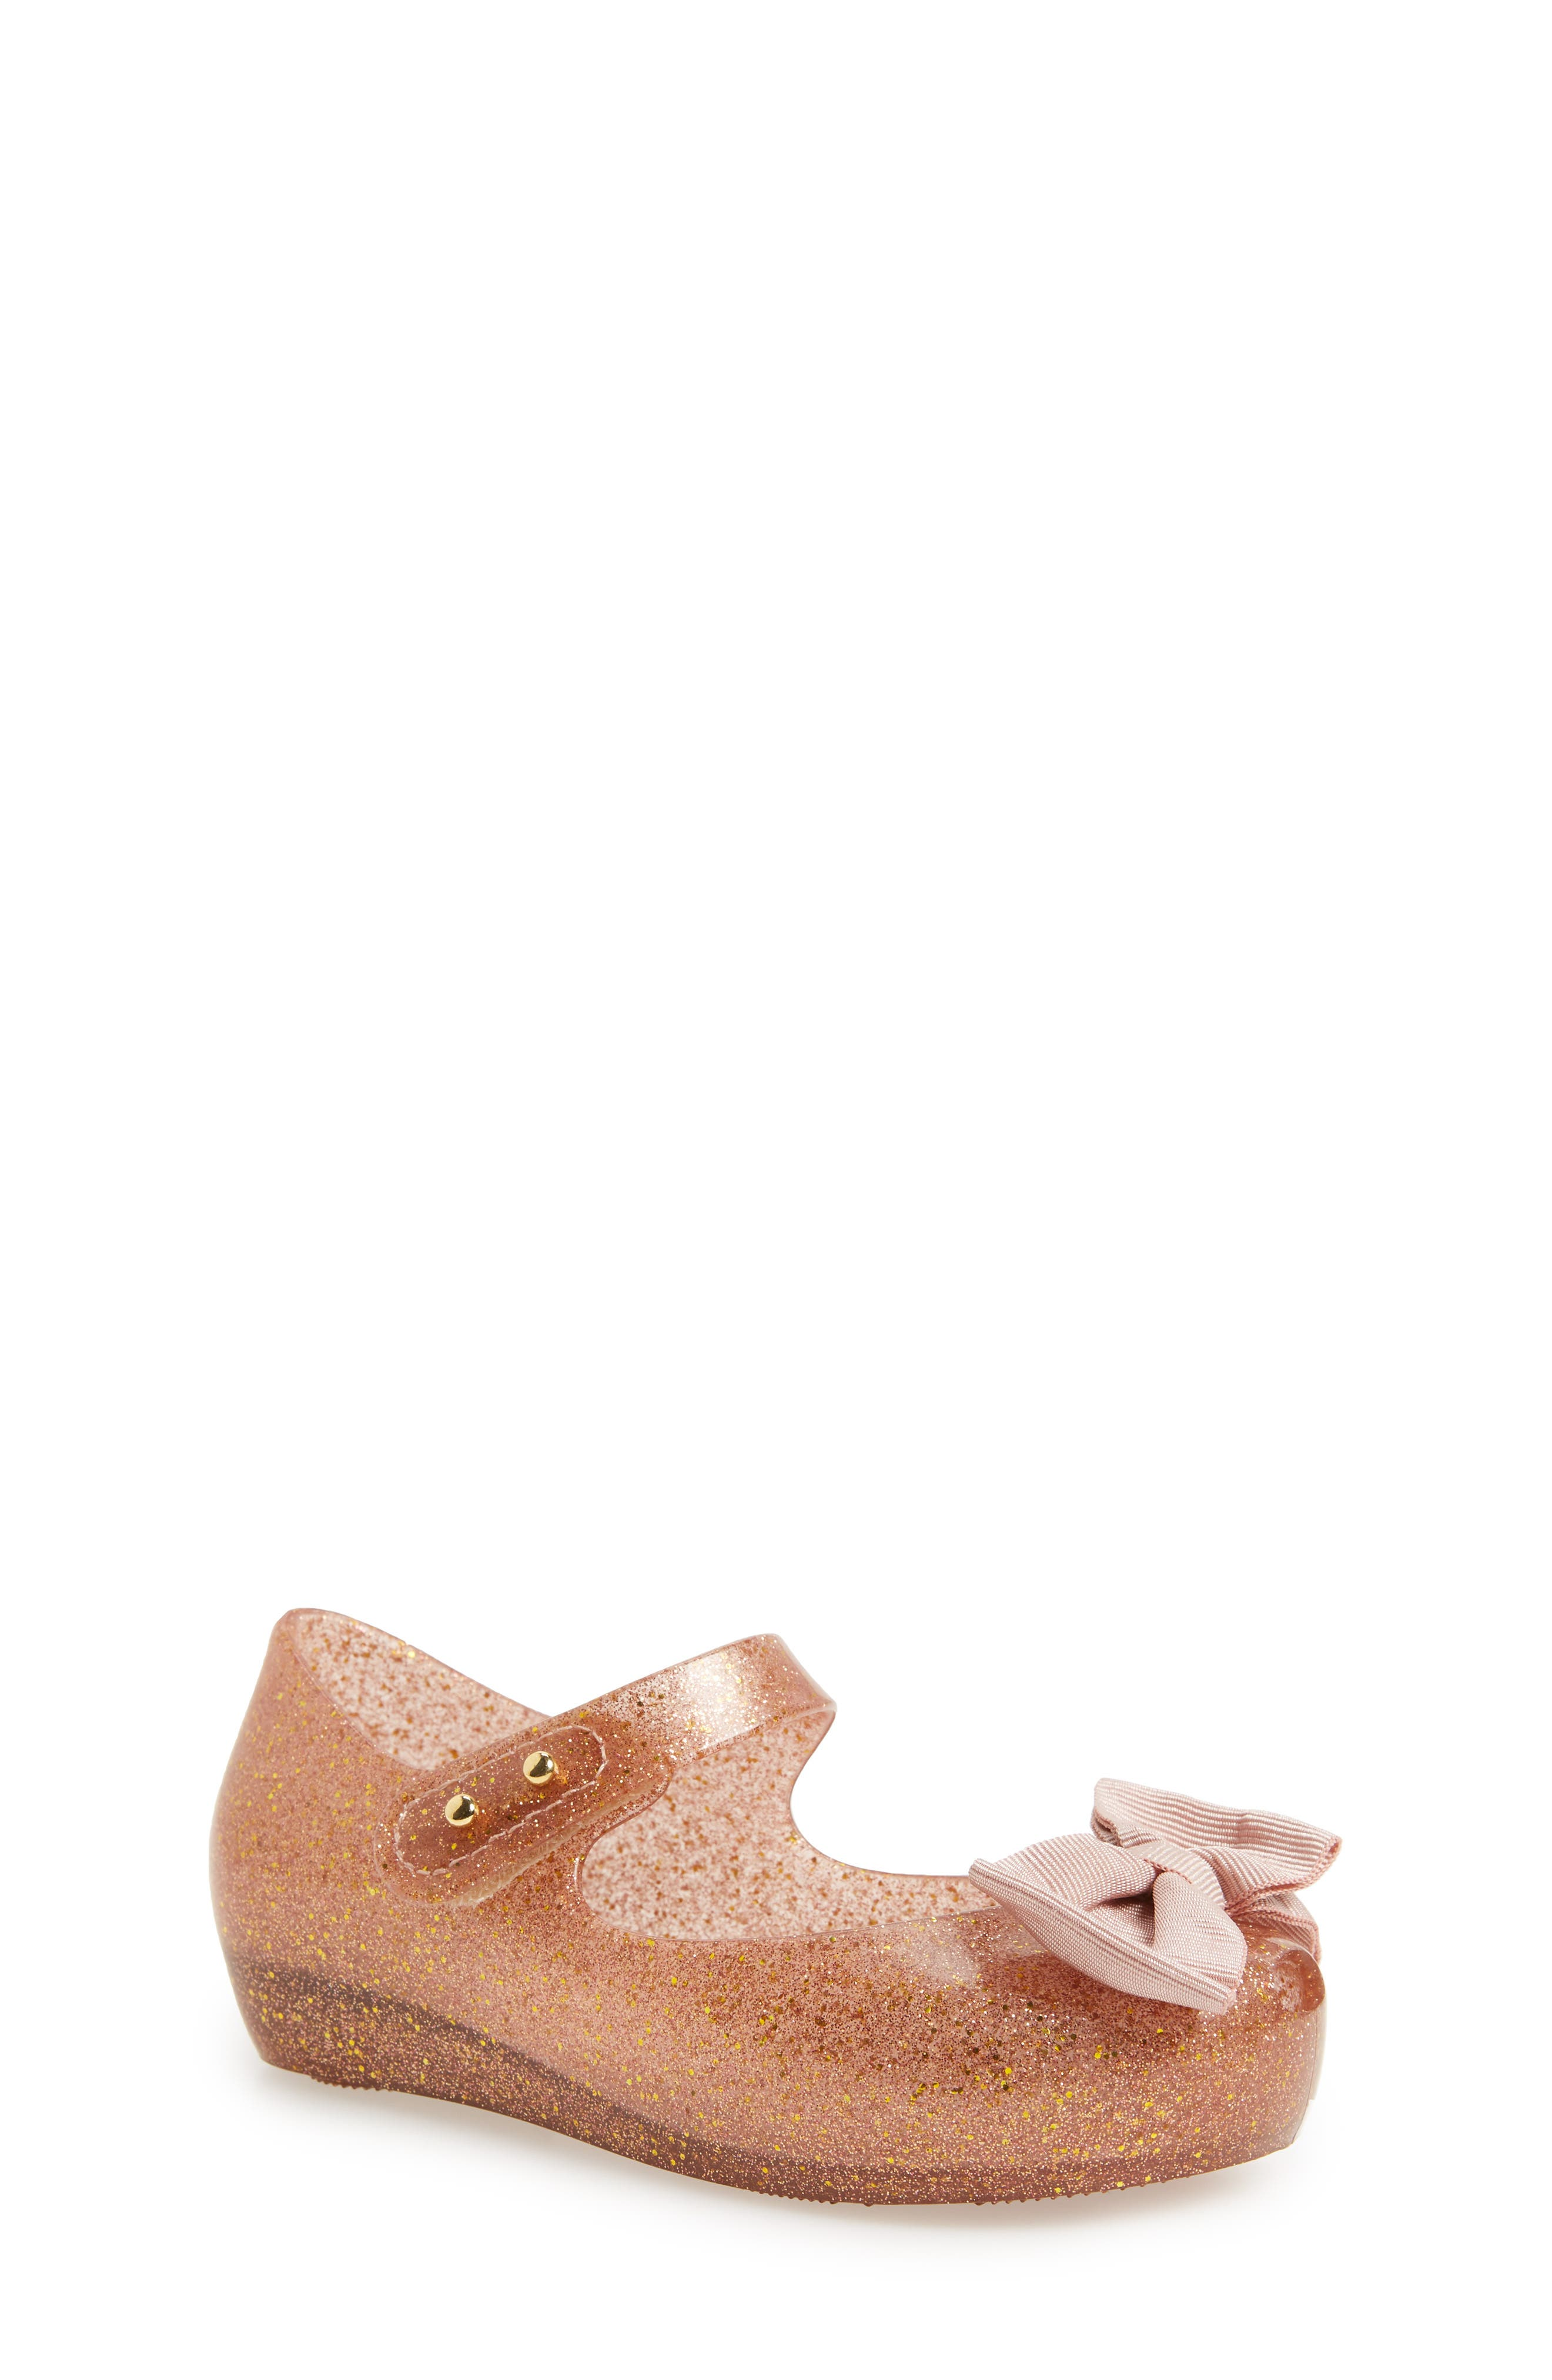 'Ultragirl Sweet' Mary Jane Flat,                             Main thumbnail 1, color,                             Pink Twinkle